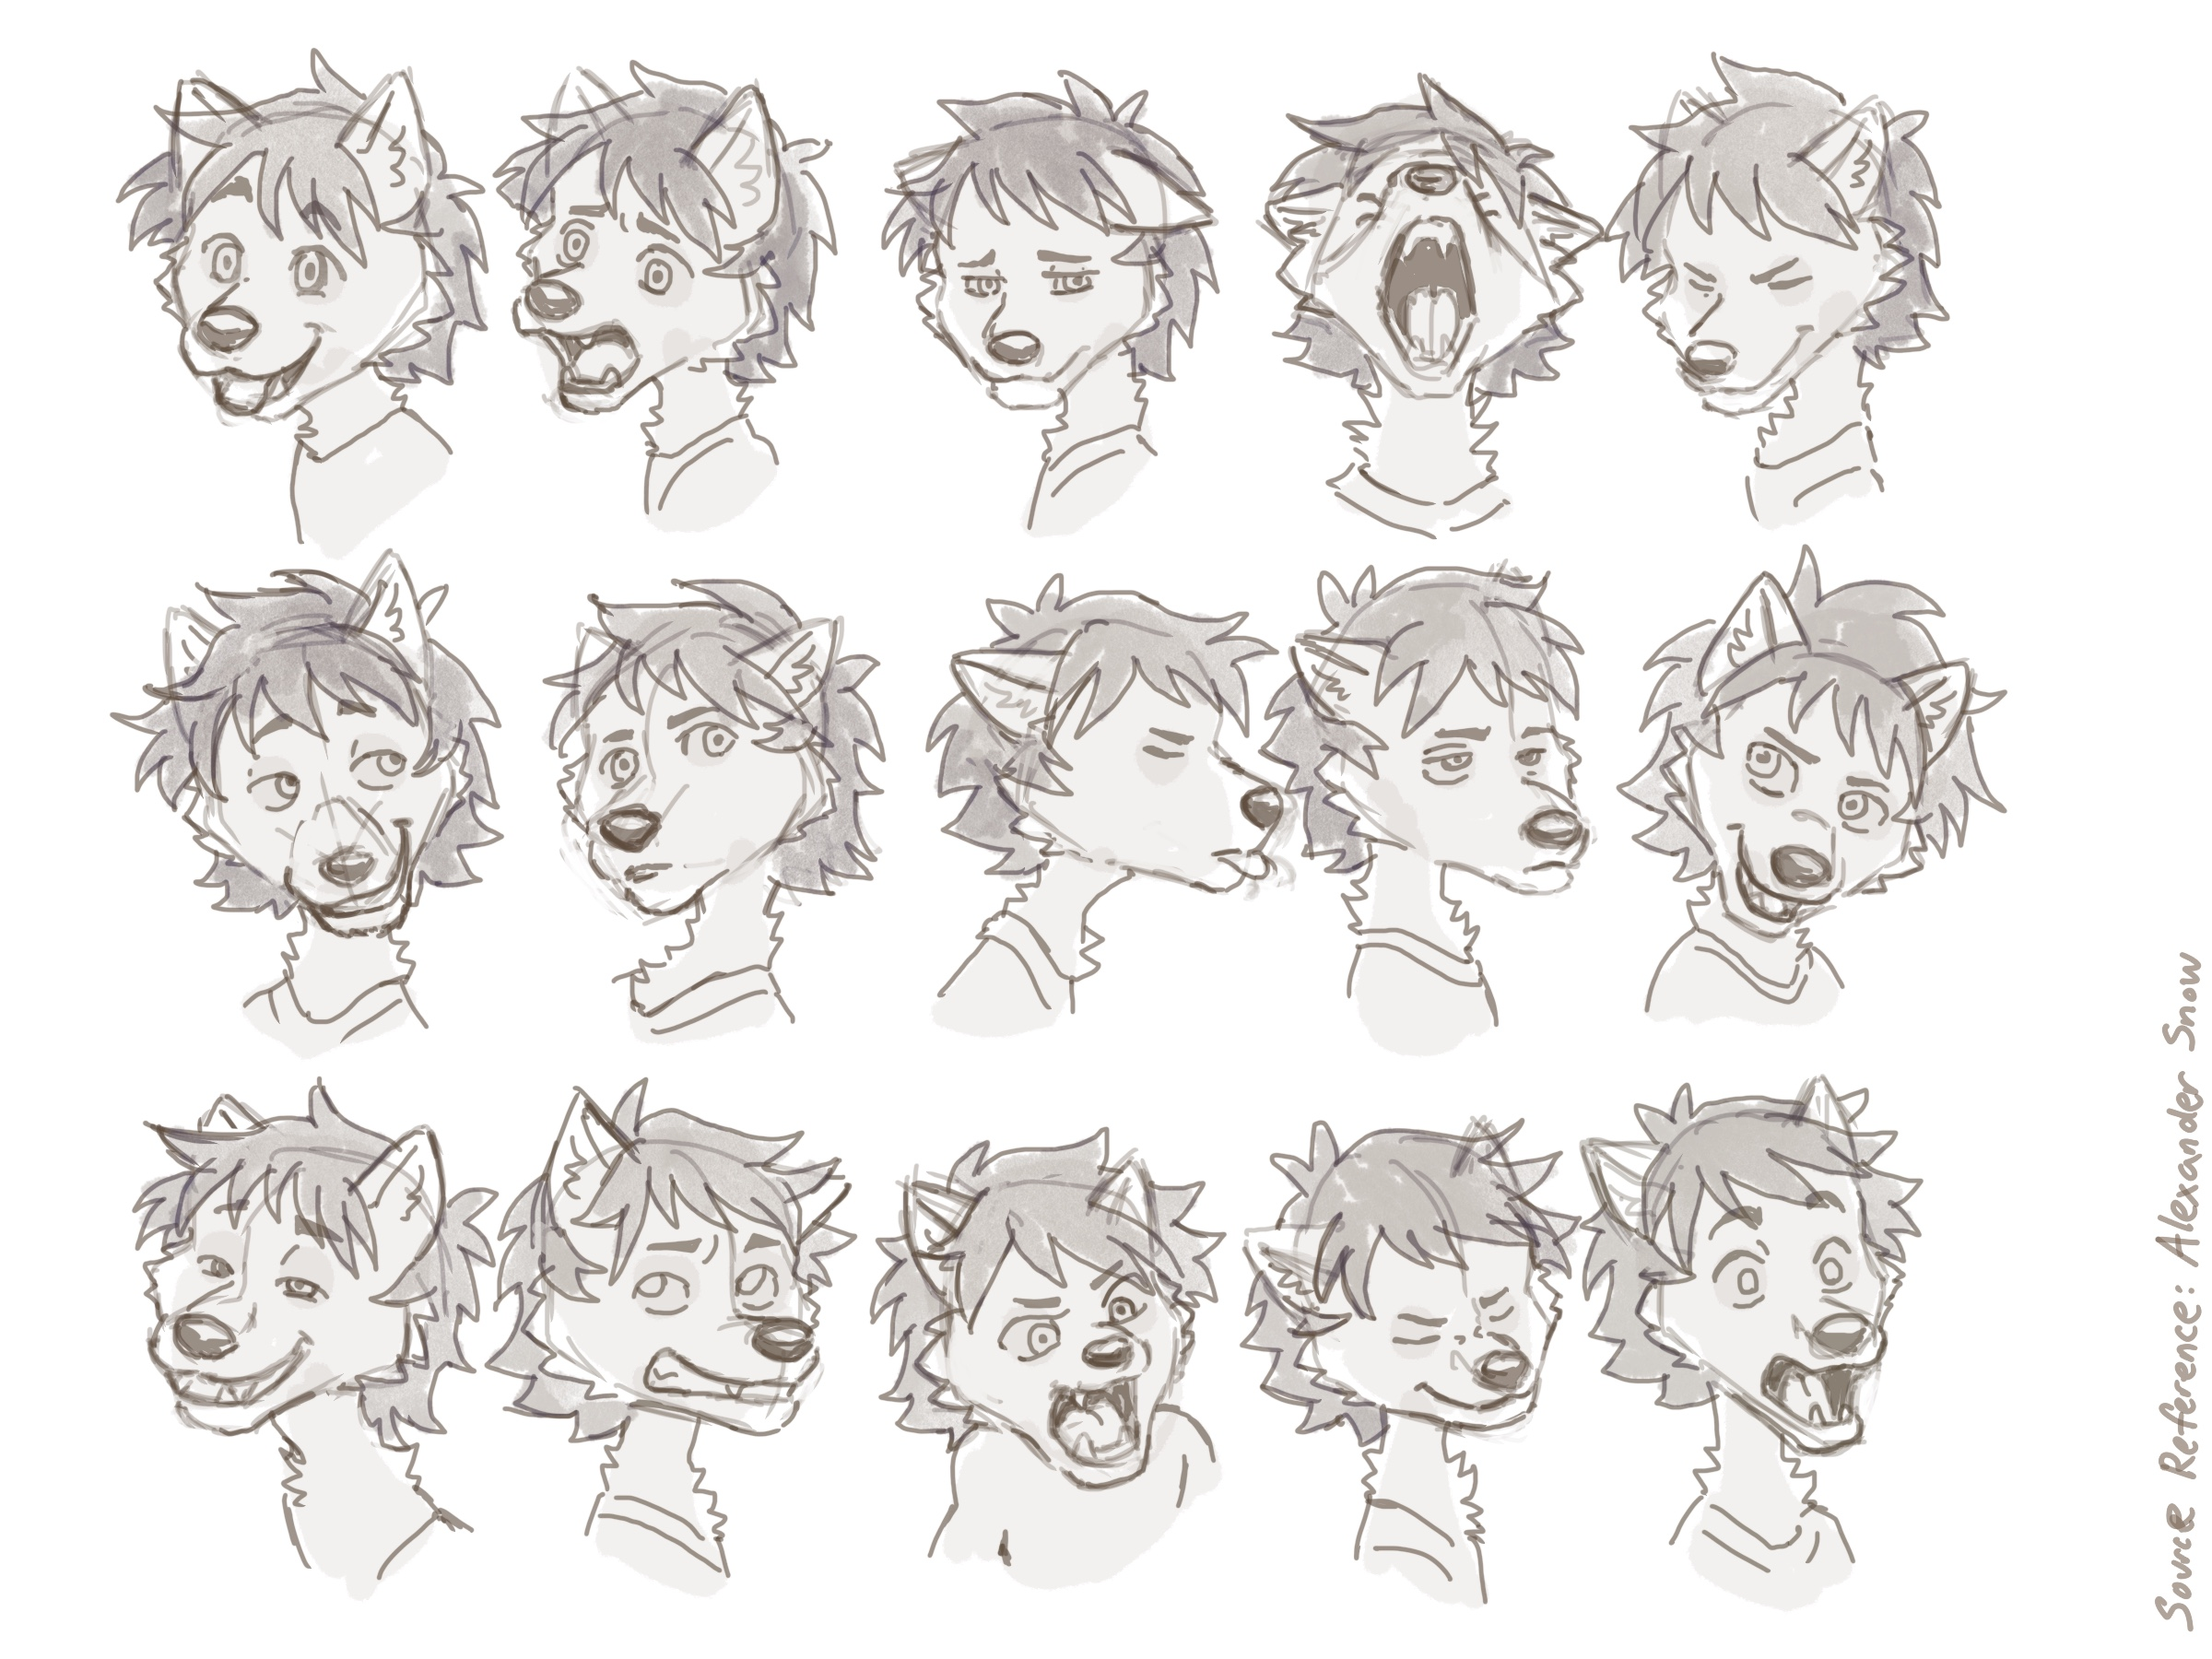 Sketch 9.27.2021: male wolf pup expressions